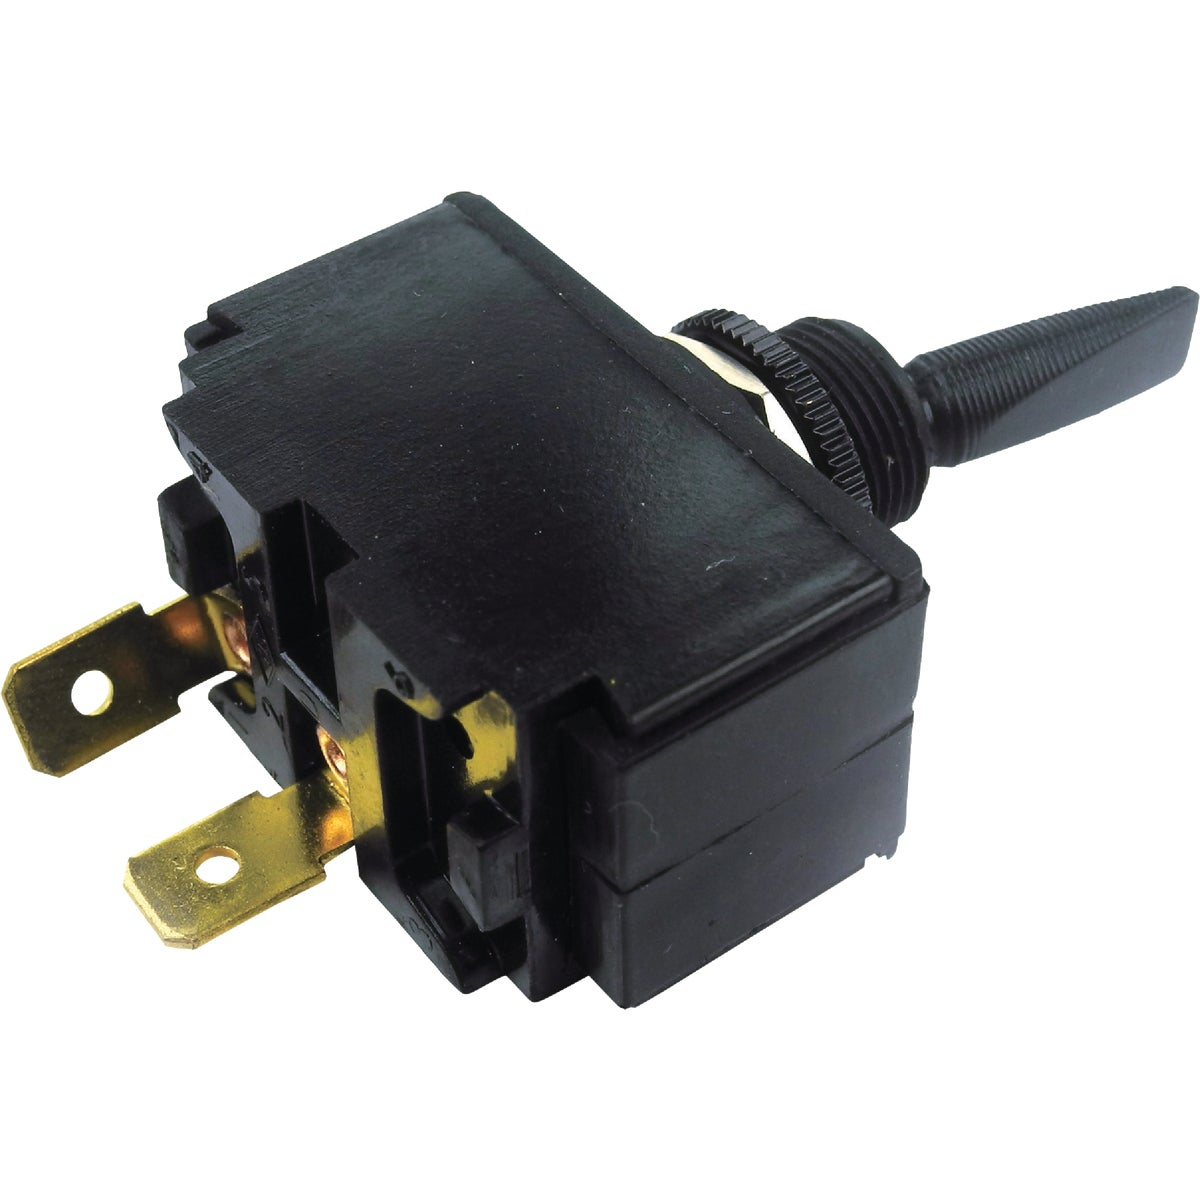 2POS TOGGLE SWITCH